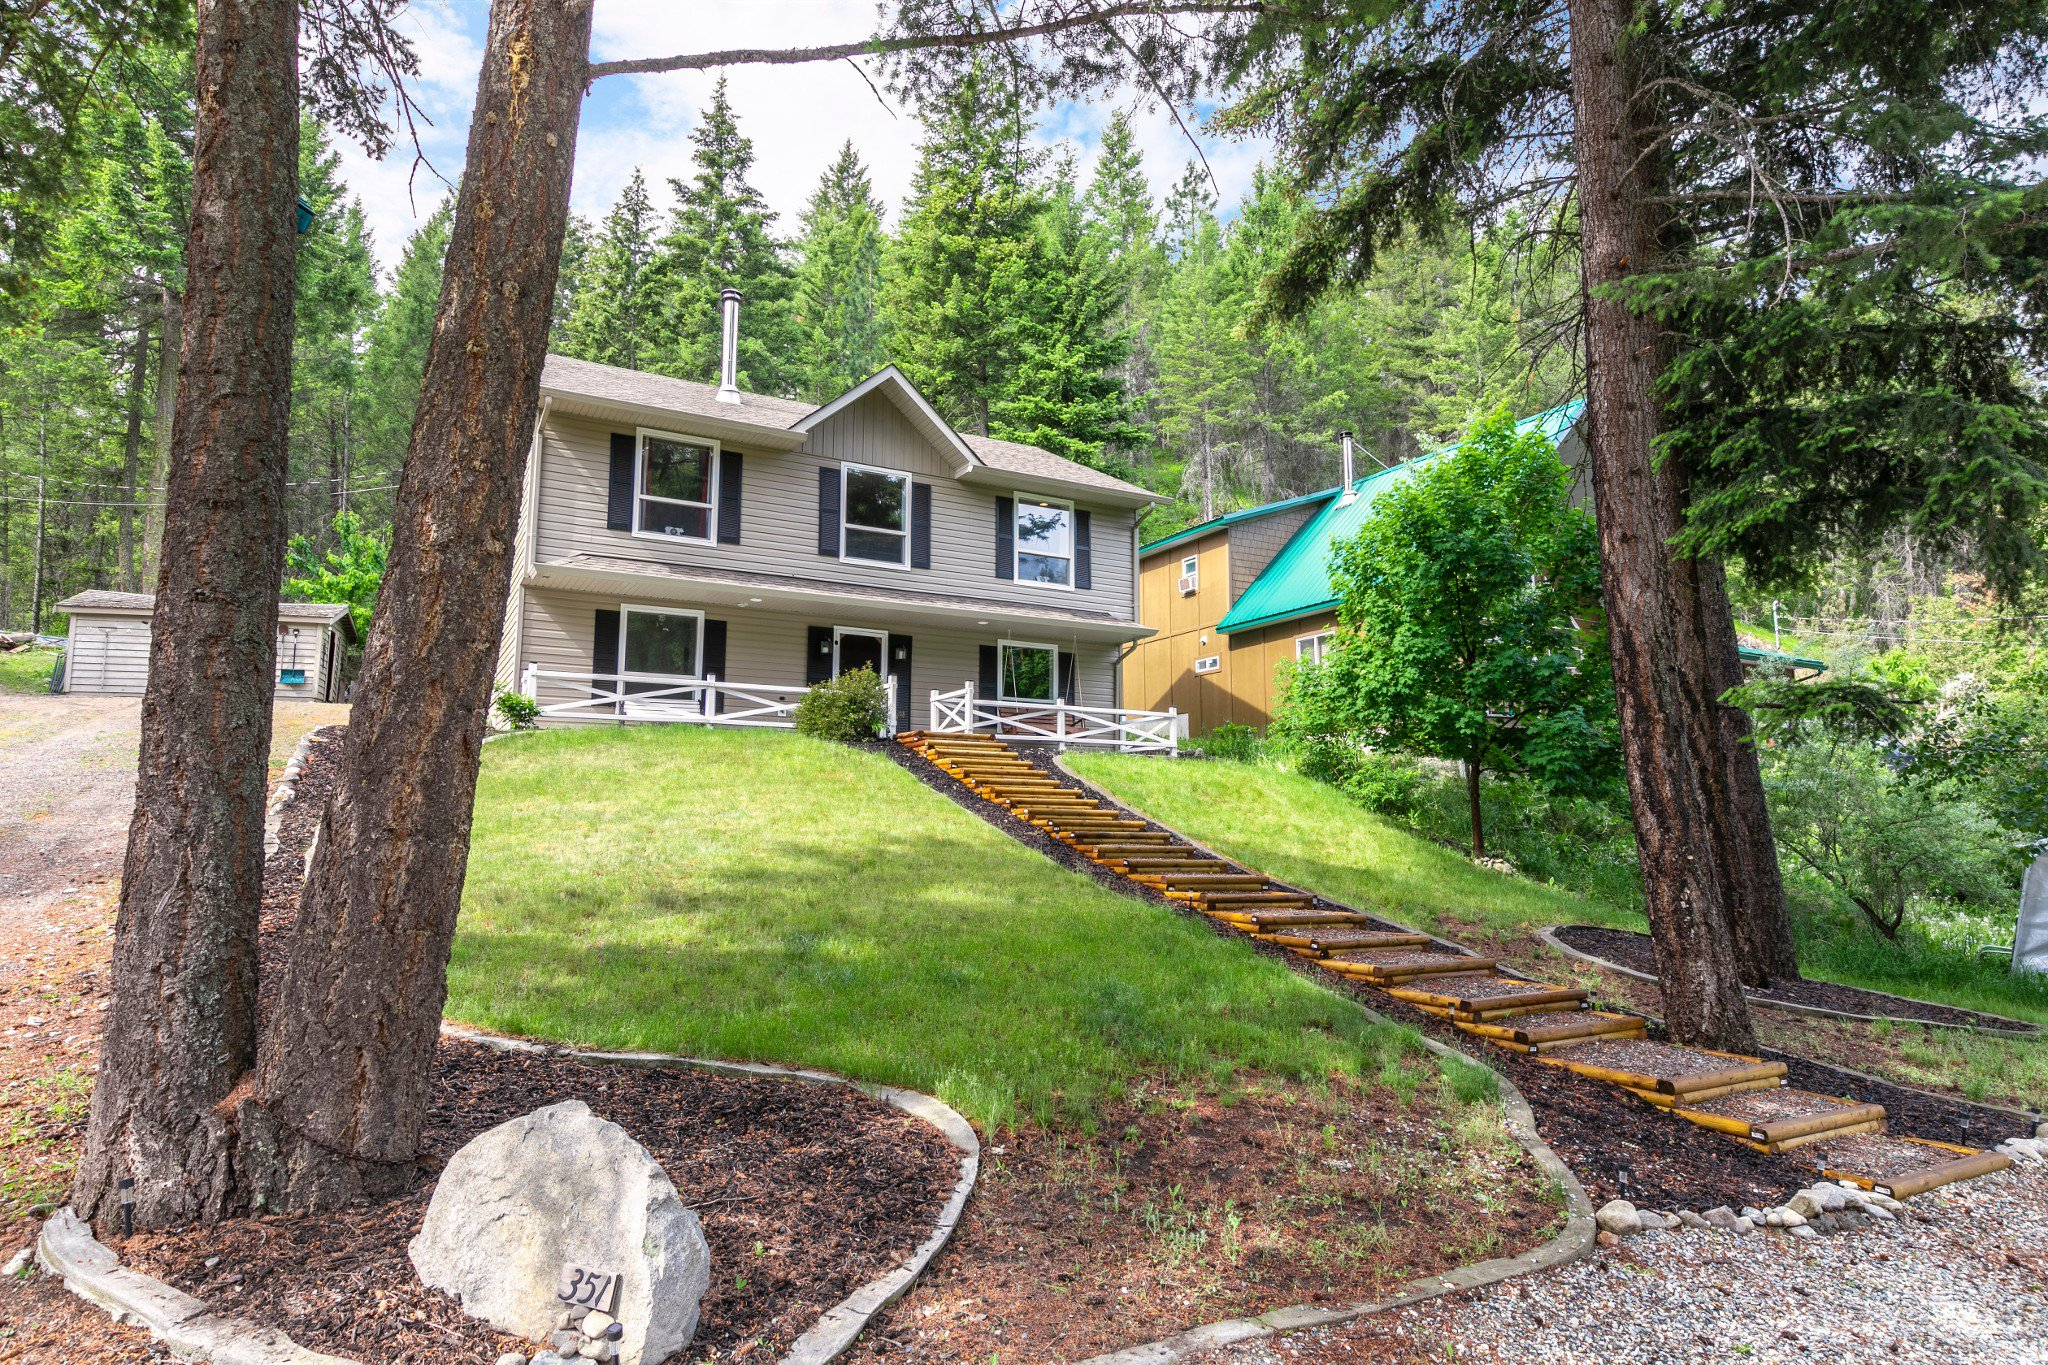 Main Photo: 351 Northern View Drive in Vernon: ON - Okanagan North House for sale (North Okanagan)